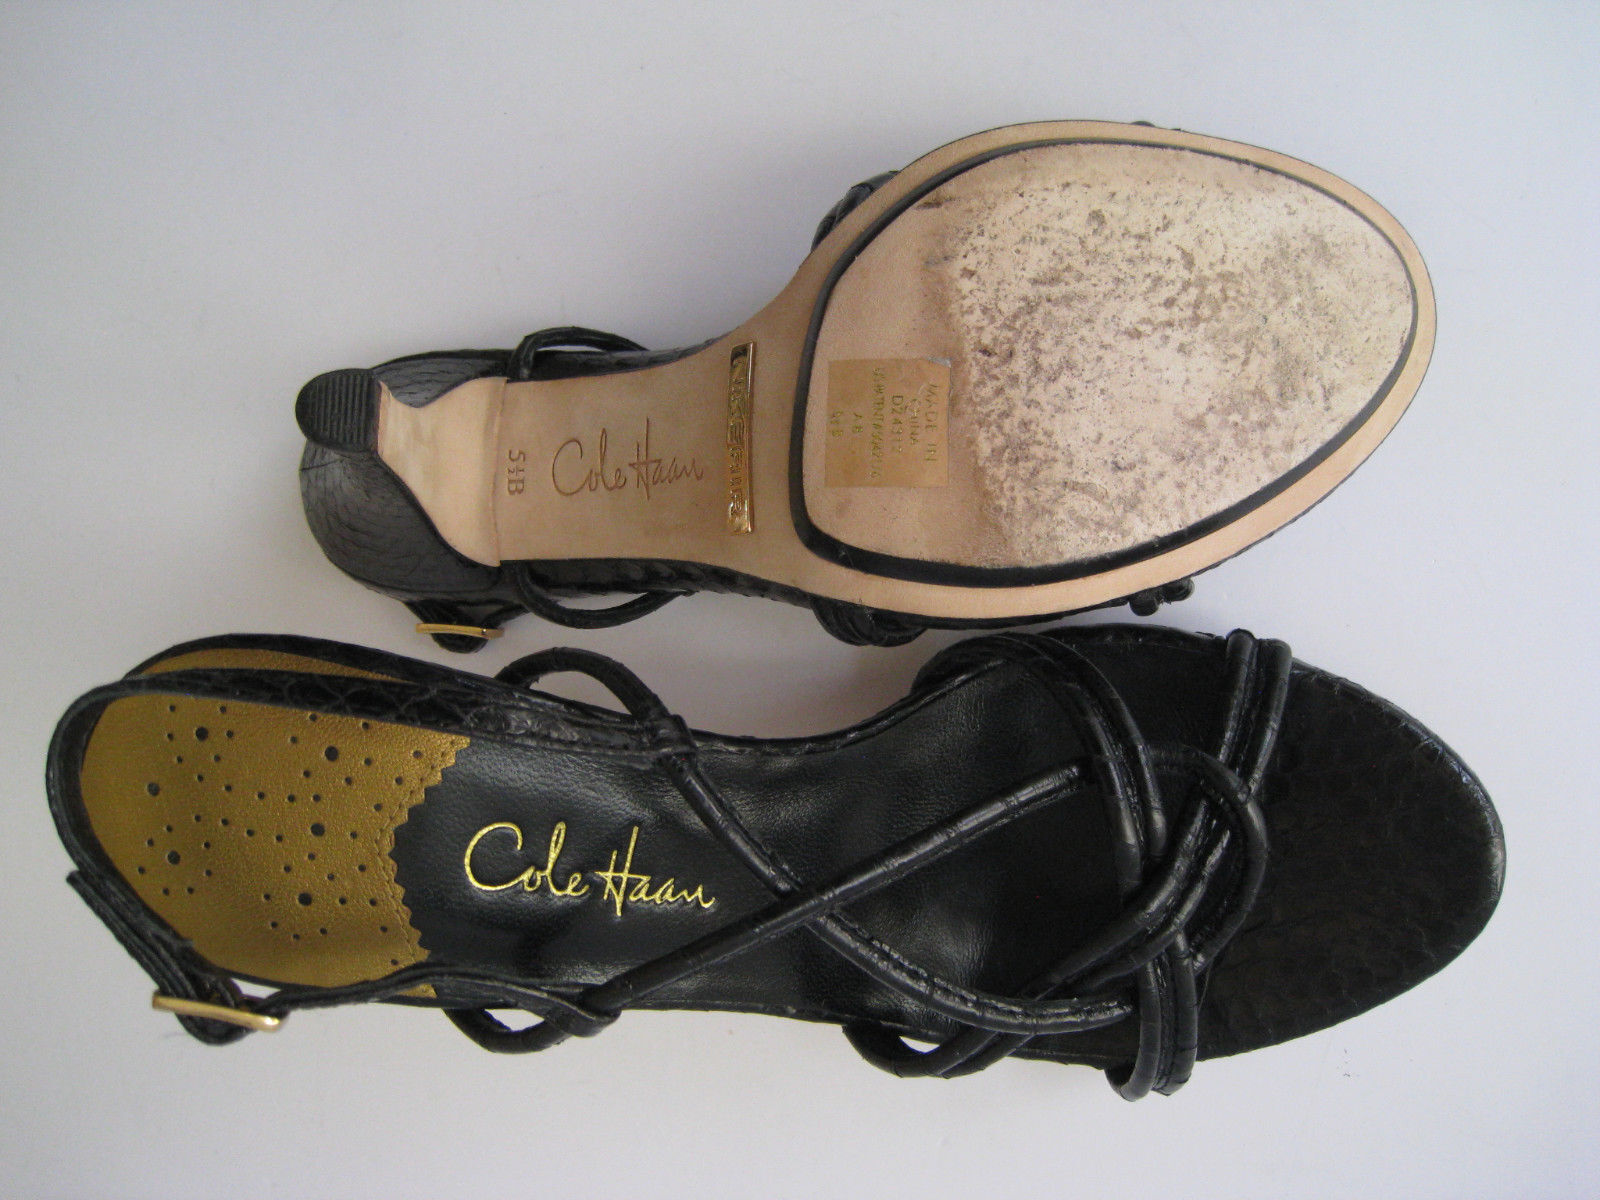 COLE HAAN LEATHER AIR SNAKE EMBOSSED BLACK LEATHER HAAN 3.5